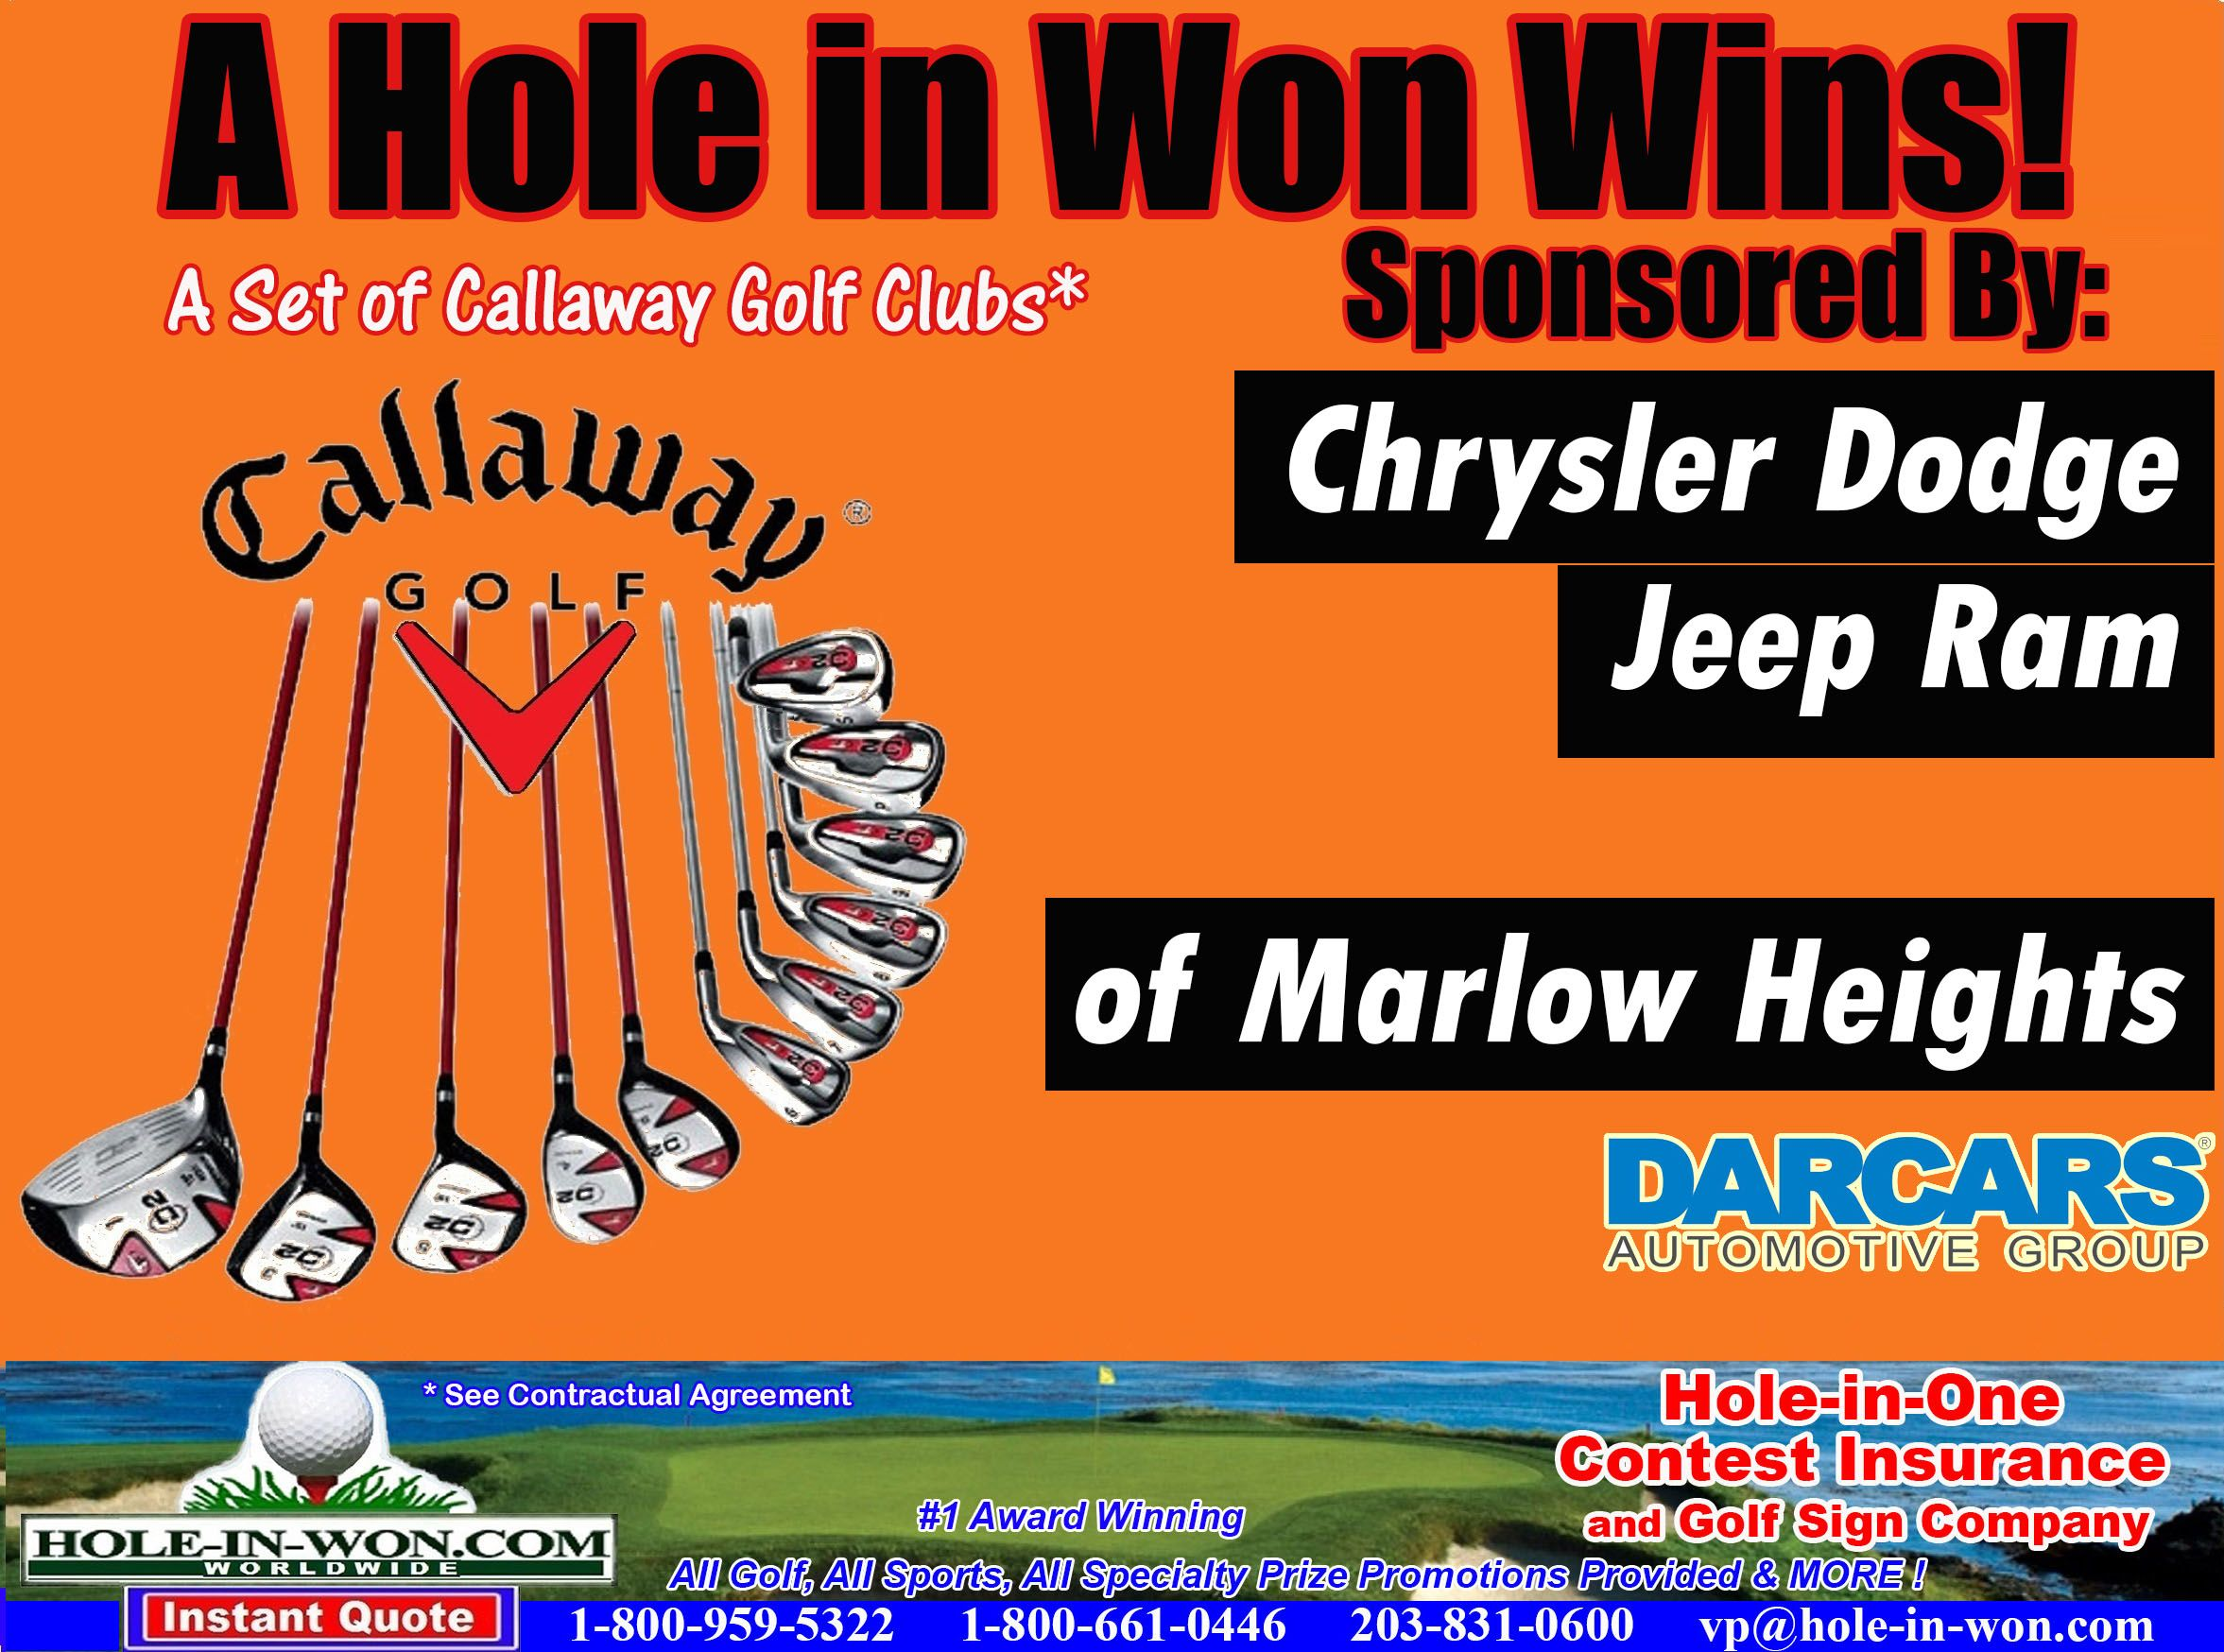 Callaway Hole in one Insurance Million Dollar Contests Golf Clubs